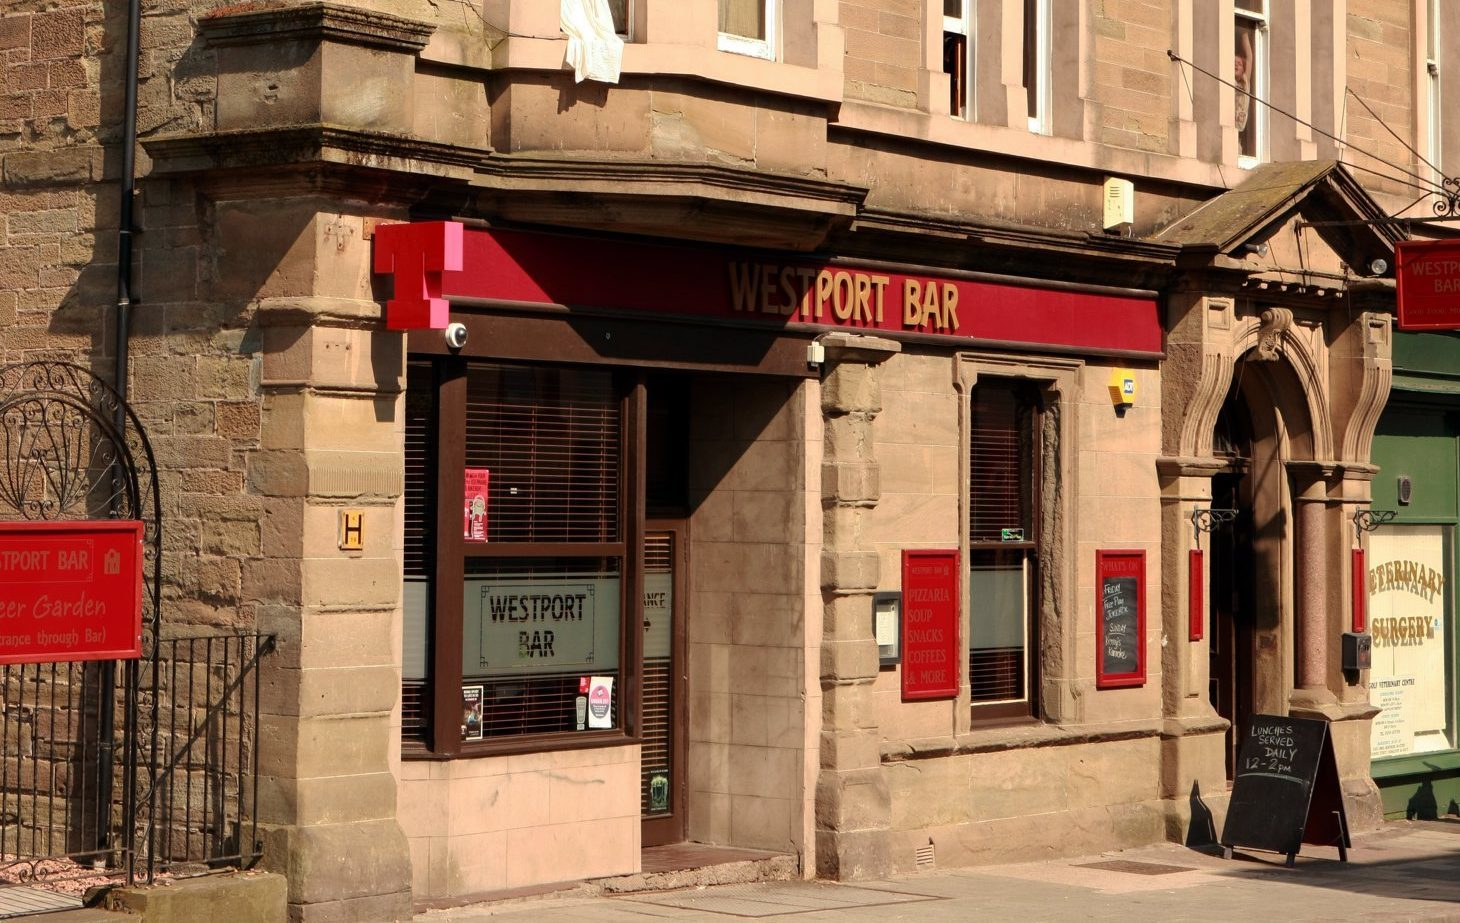 The Westport Bar in Arbroath.